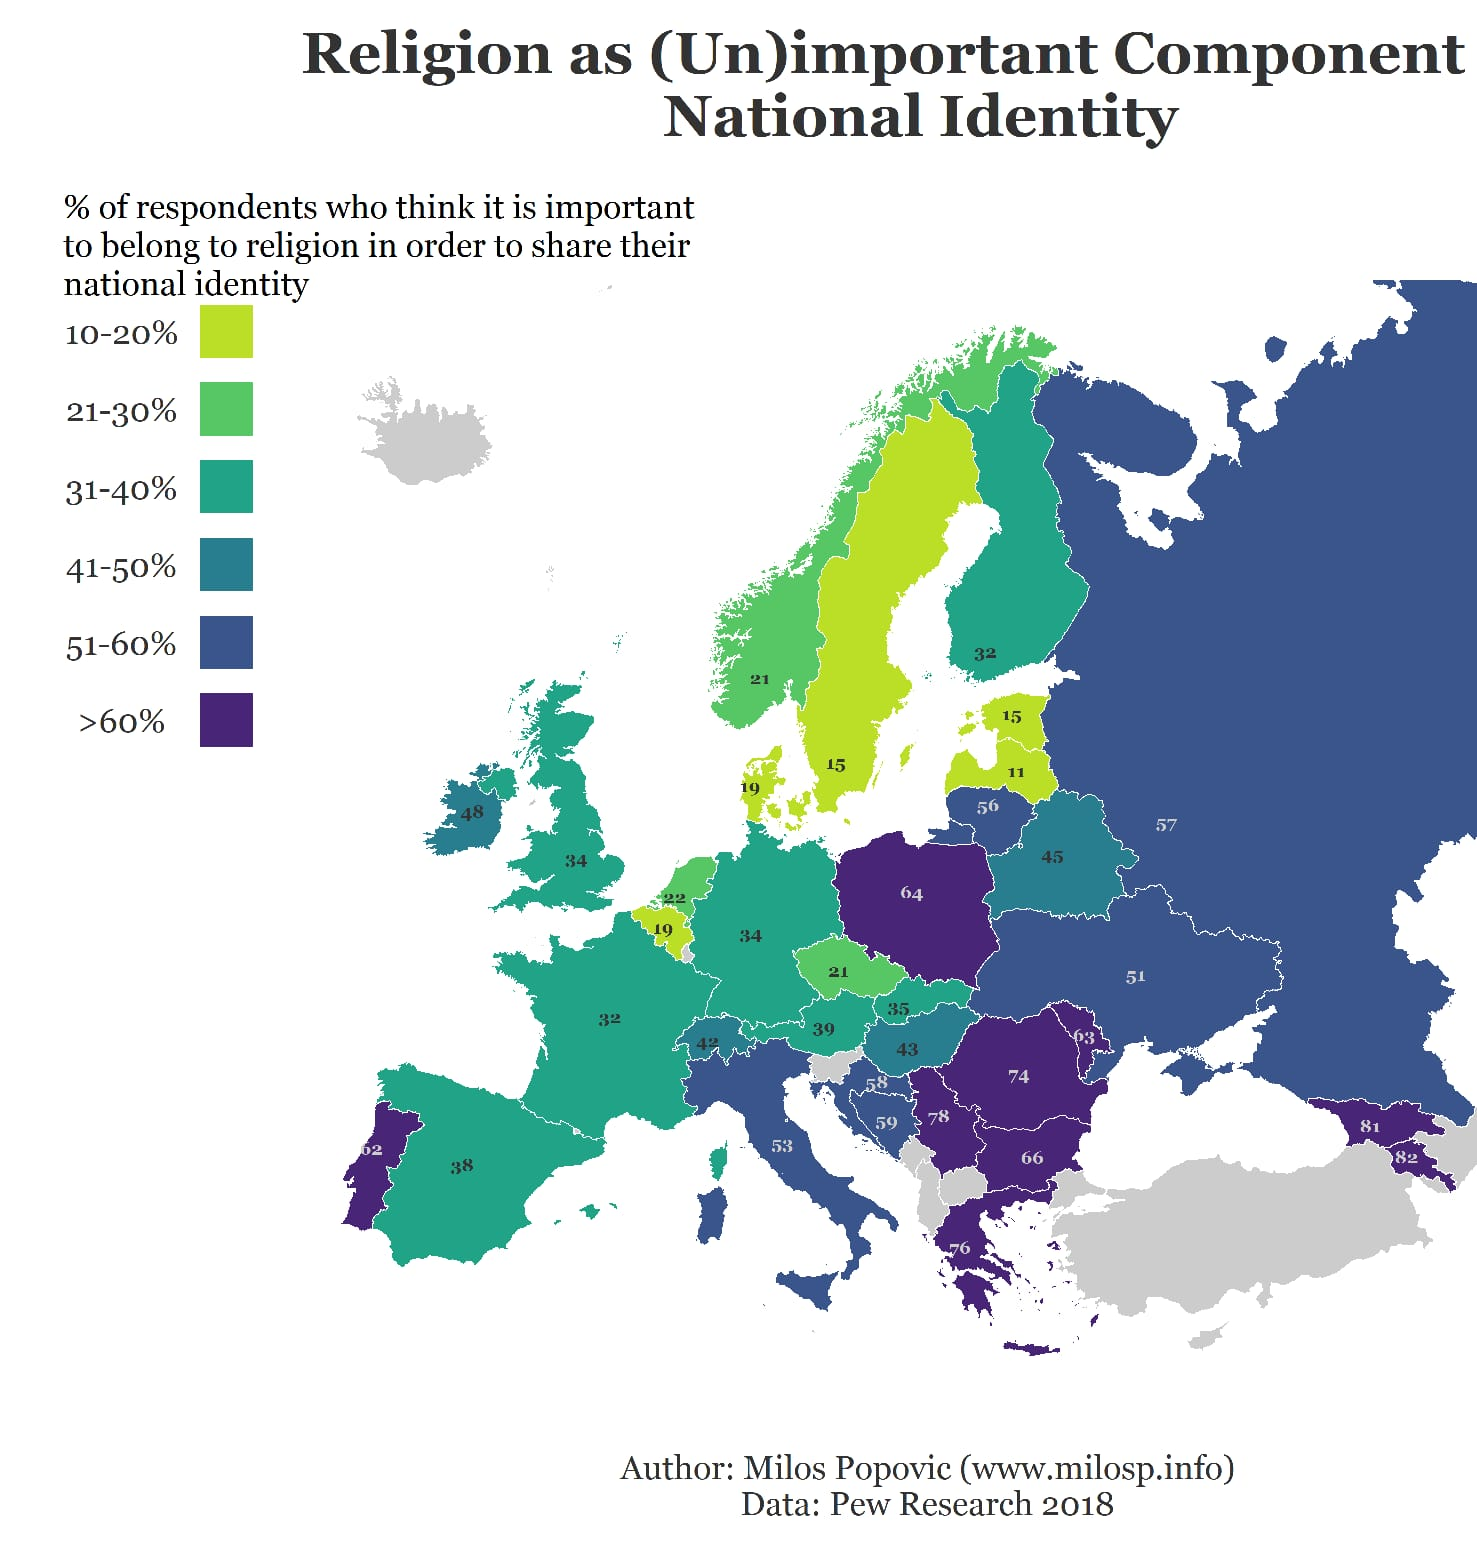 Religion as (Un)important Component National Identity